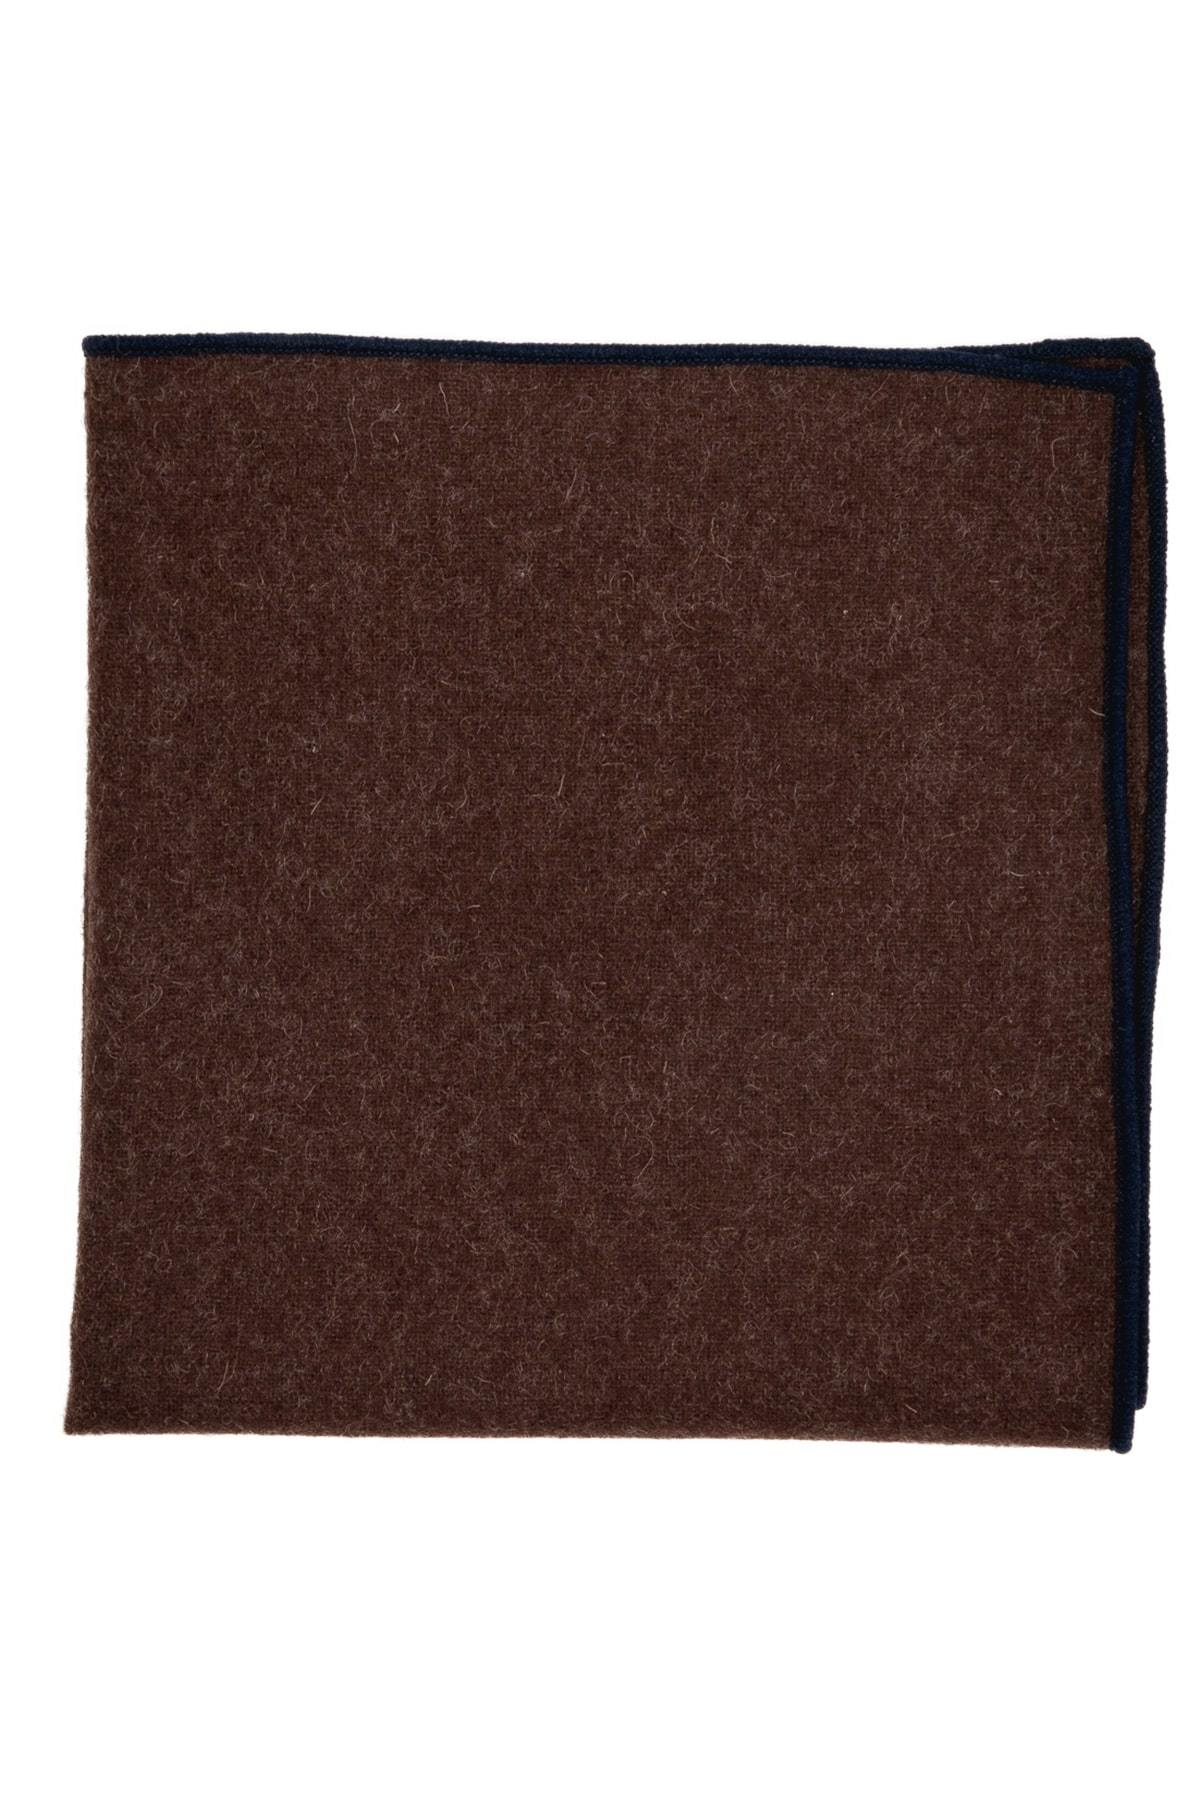 The Brown Wool Pocket